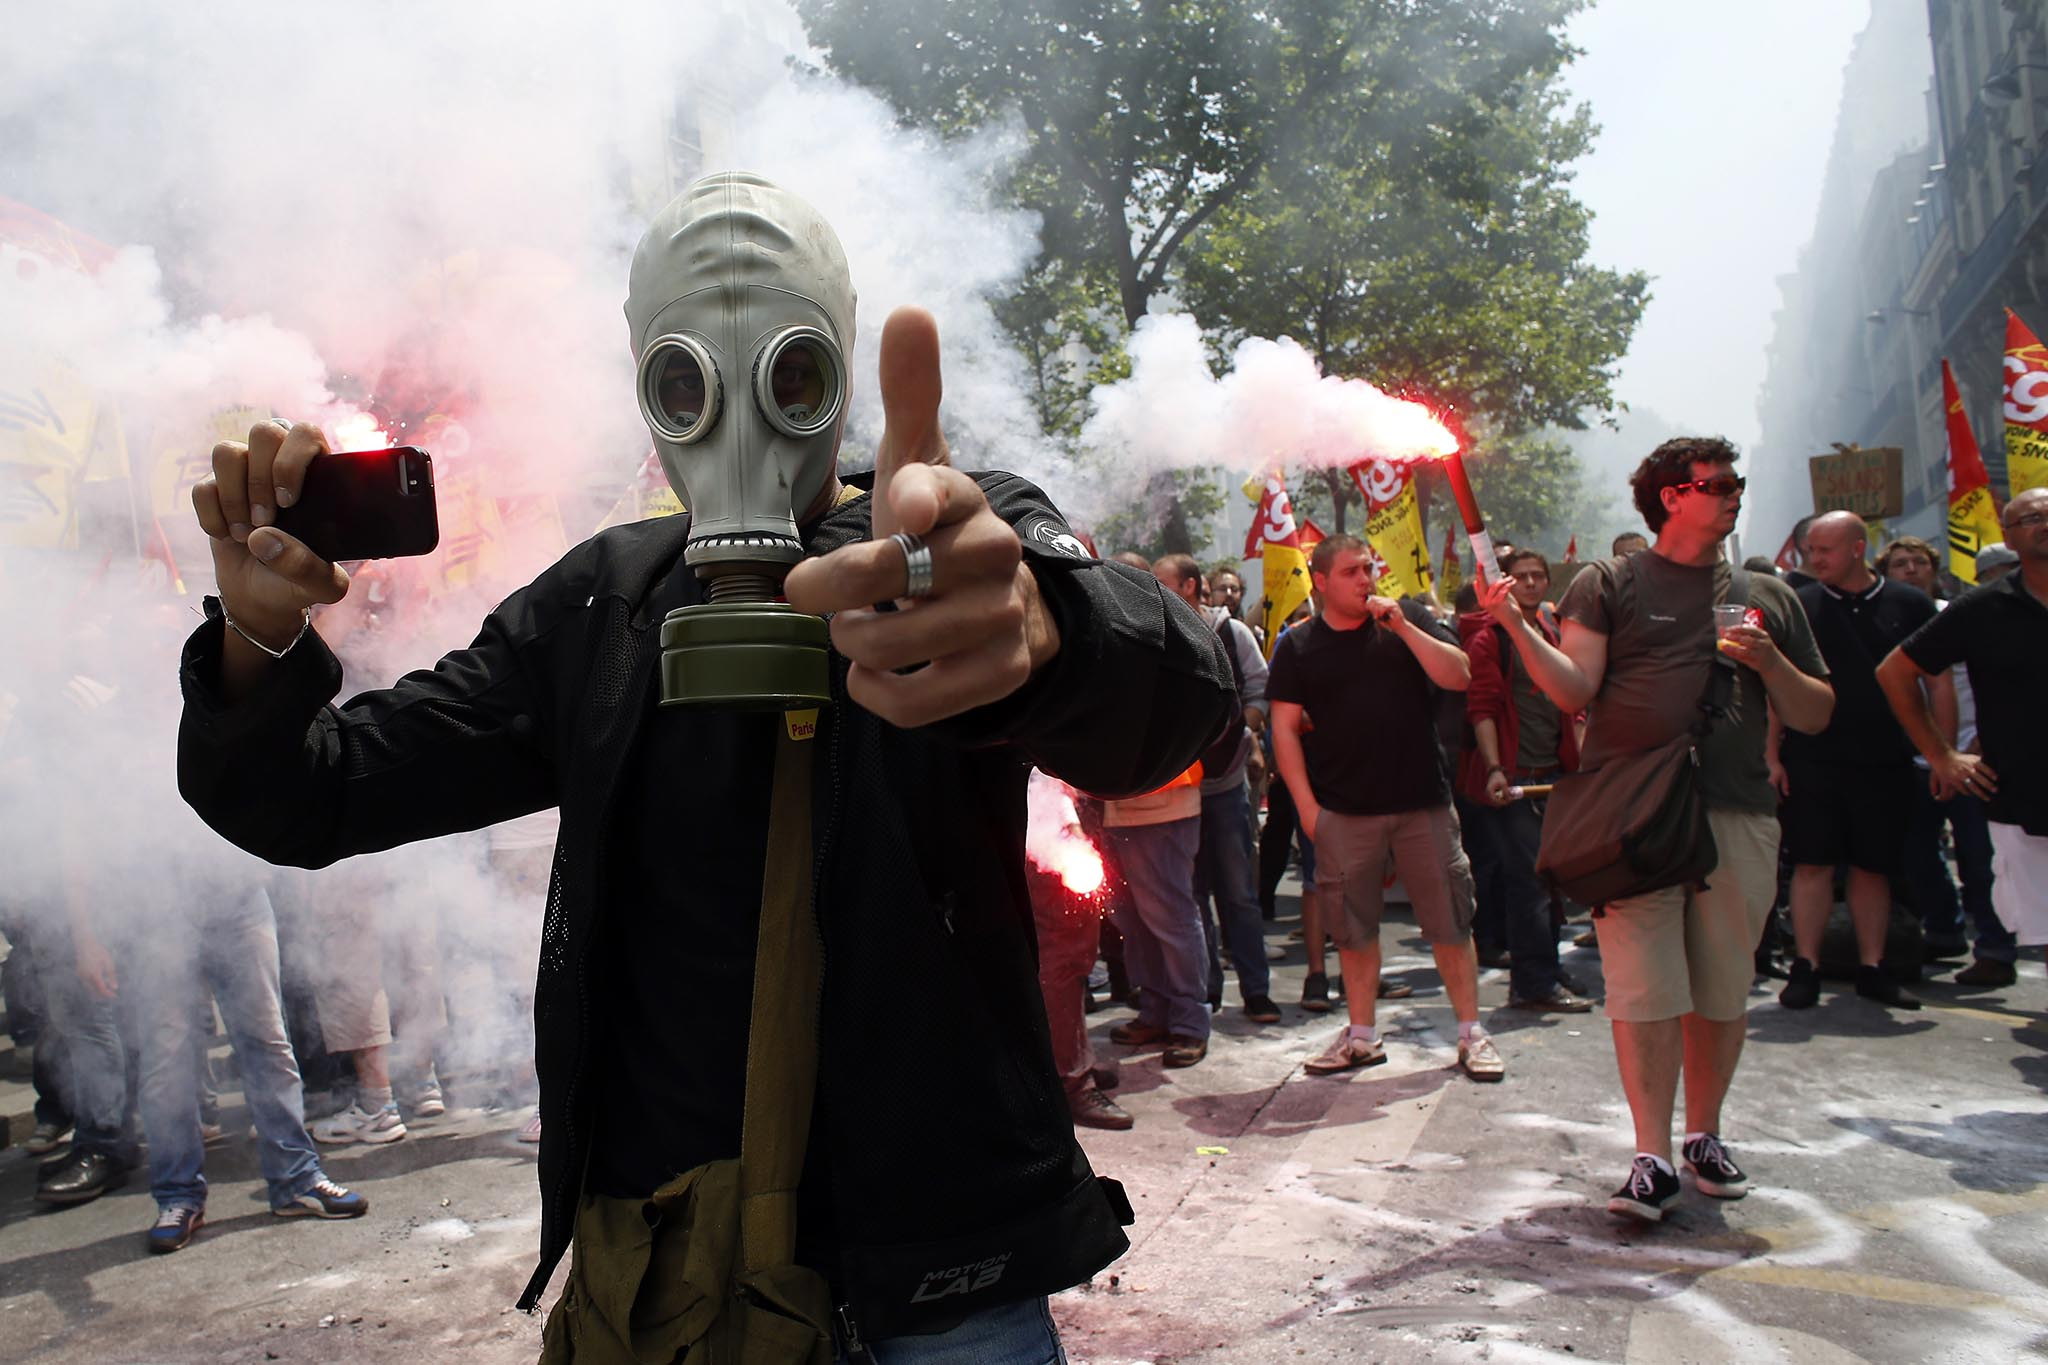 A protester wearing a gas mask holds a smartphone and gestures